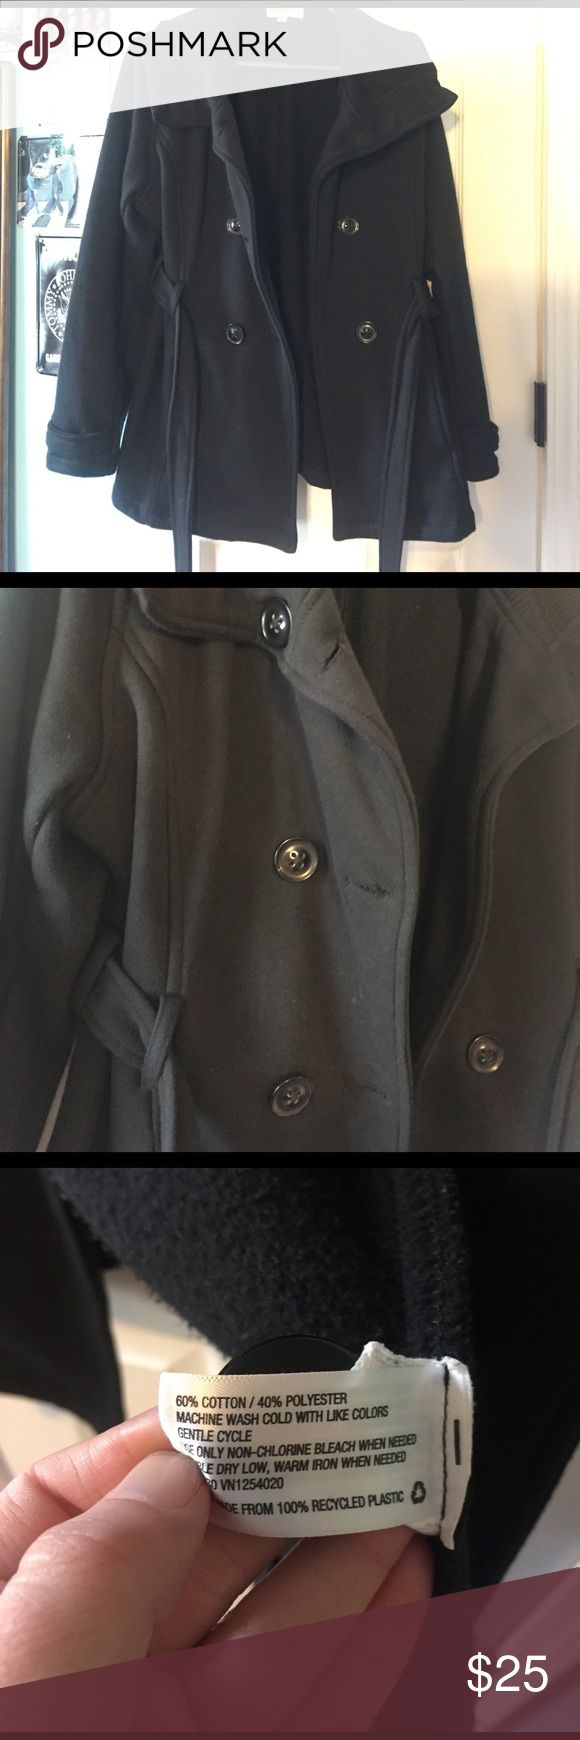 Black pea coat Black Merona pea coat made of polyester and cotton. Very warm and comfy. Worn a couple of times. It in great shape! Merona Jackets & Coats Pea Coats